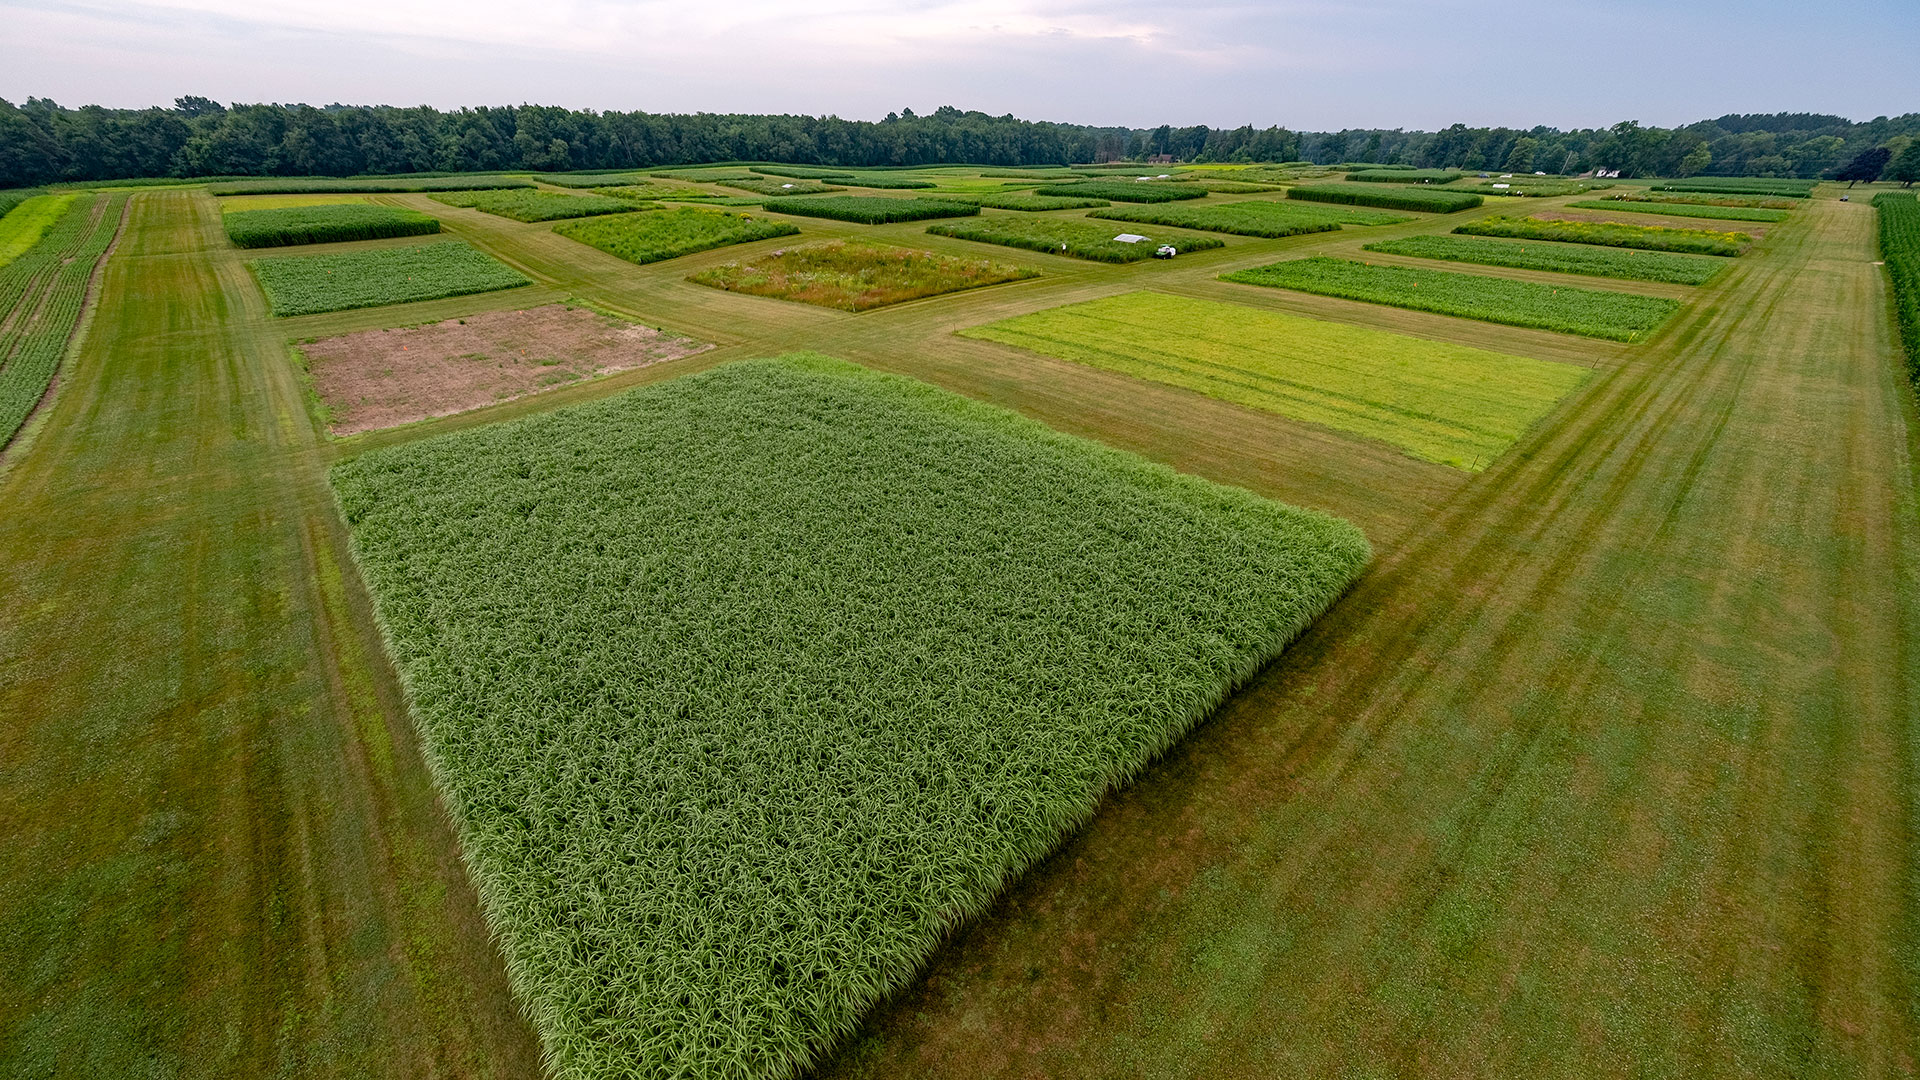 Aerial view of the KBS-based Great Lakes Bioenergy Research Center site.